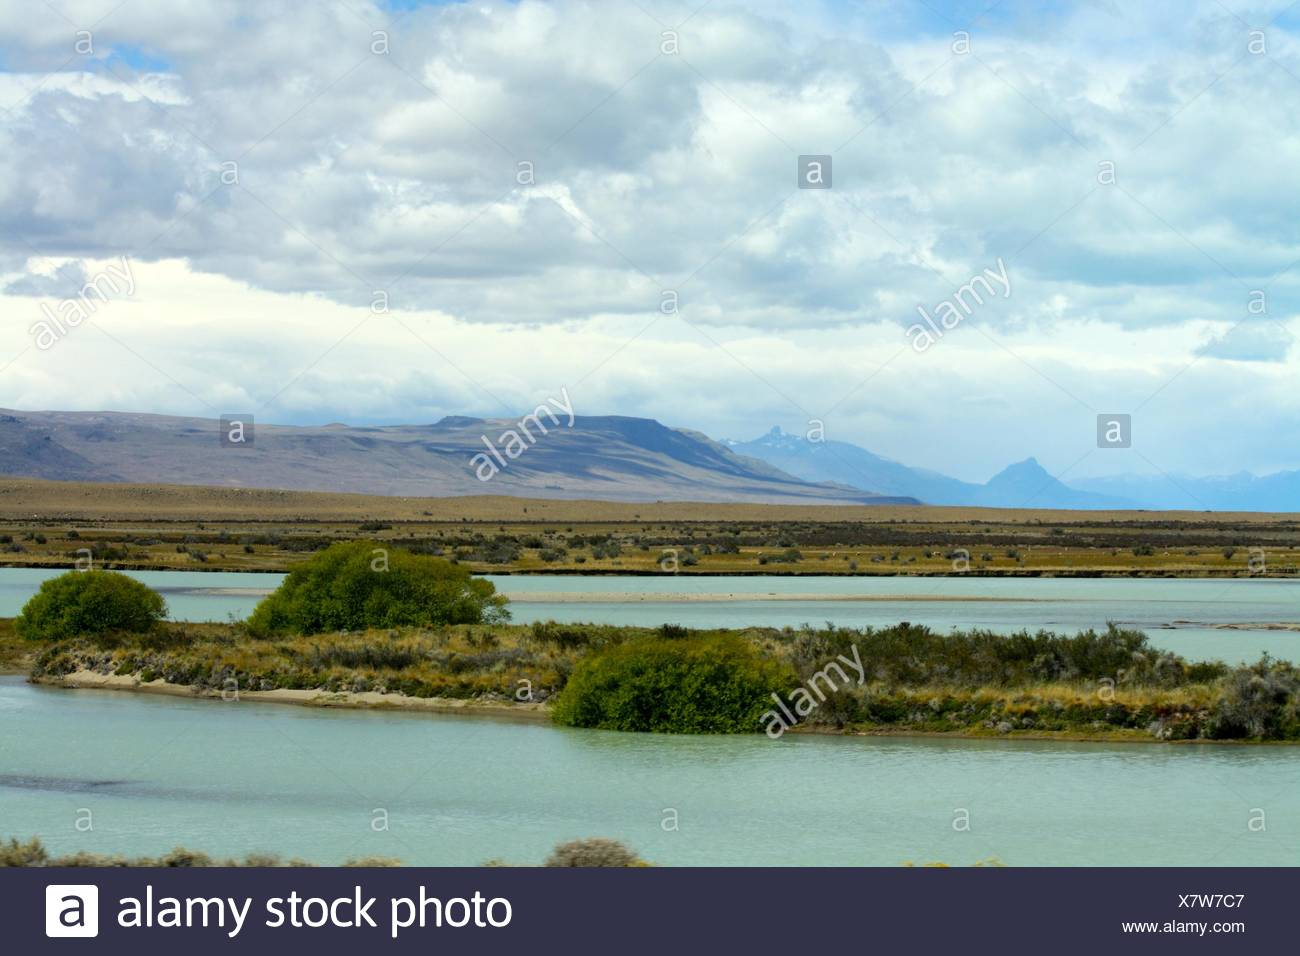 A Small Island On A Body Of Water - Stock Image